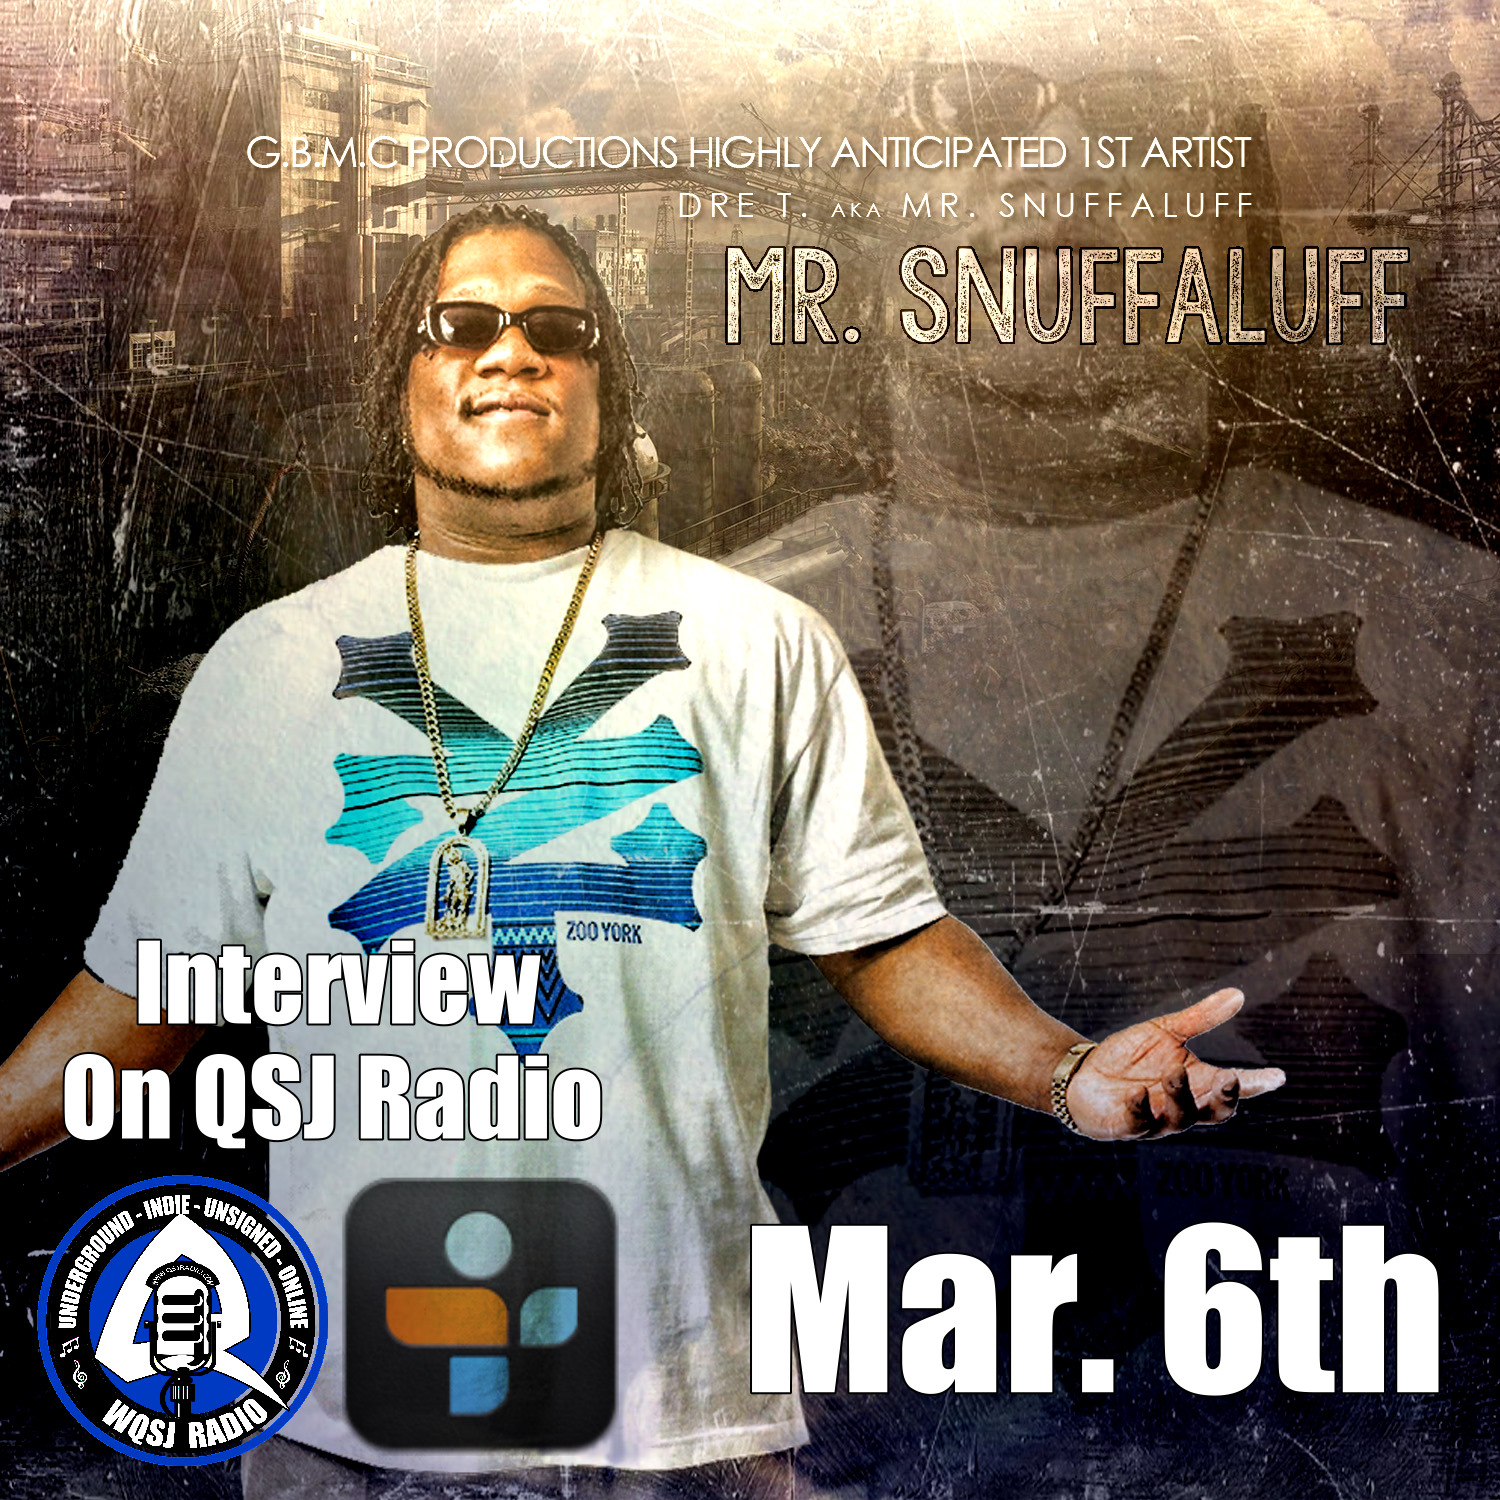 QSJ Radio | 3.6.2014 No Dear Air Dre T. aka Mr. Snuffaluff